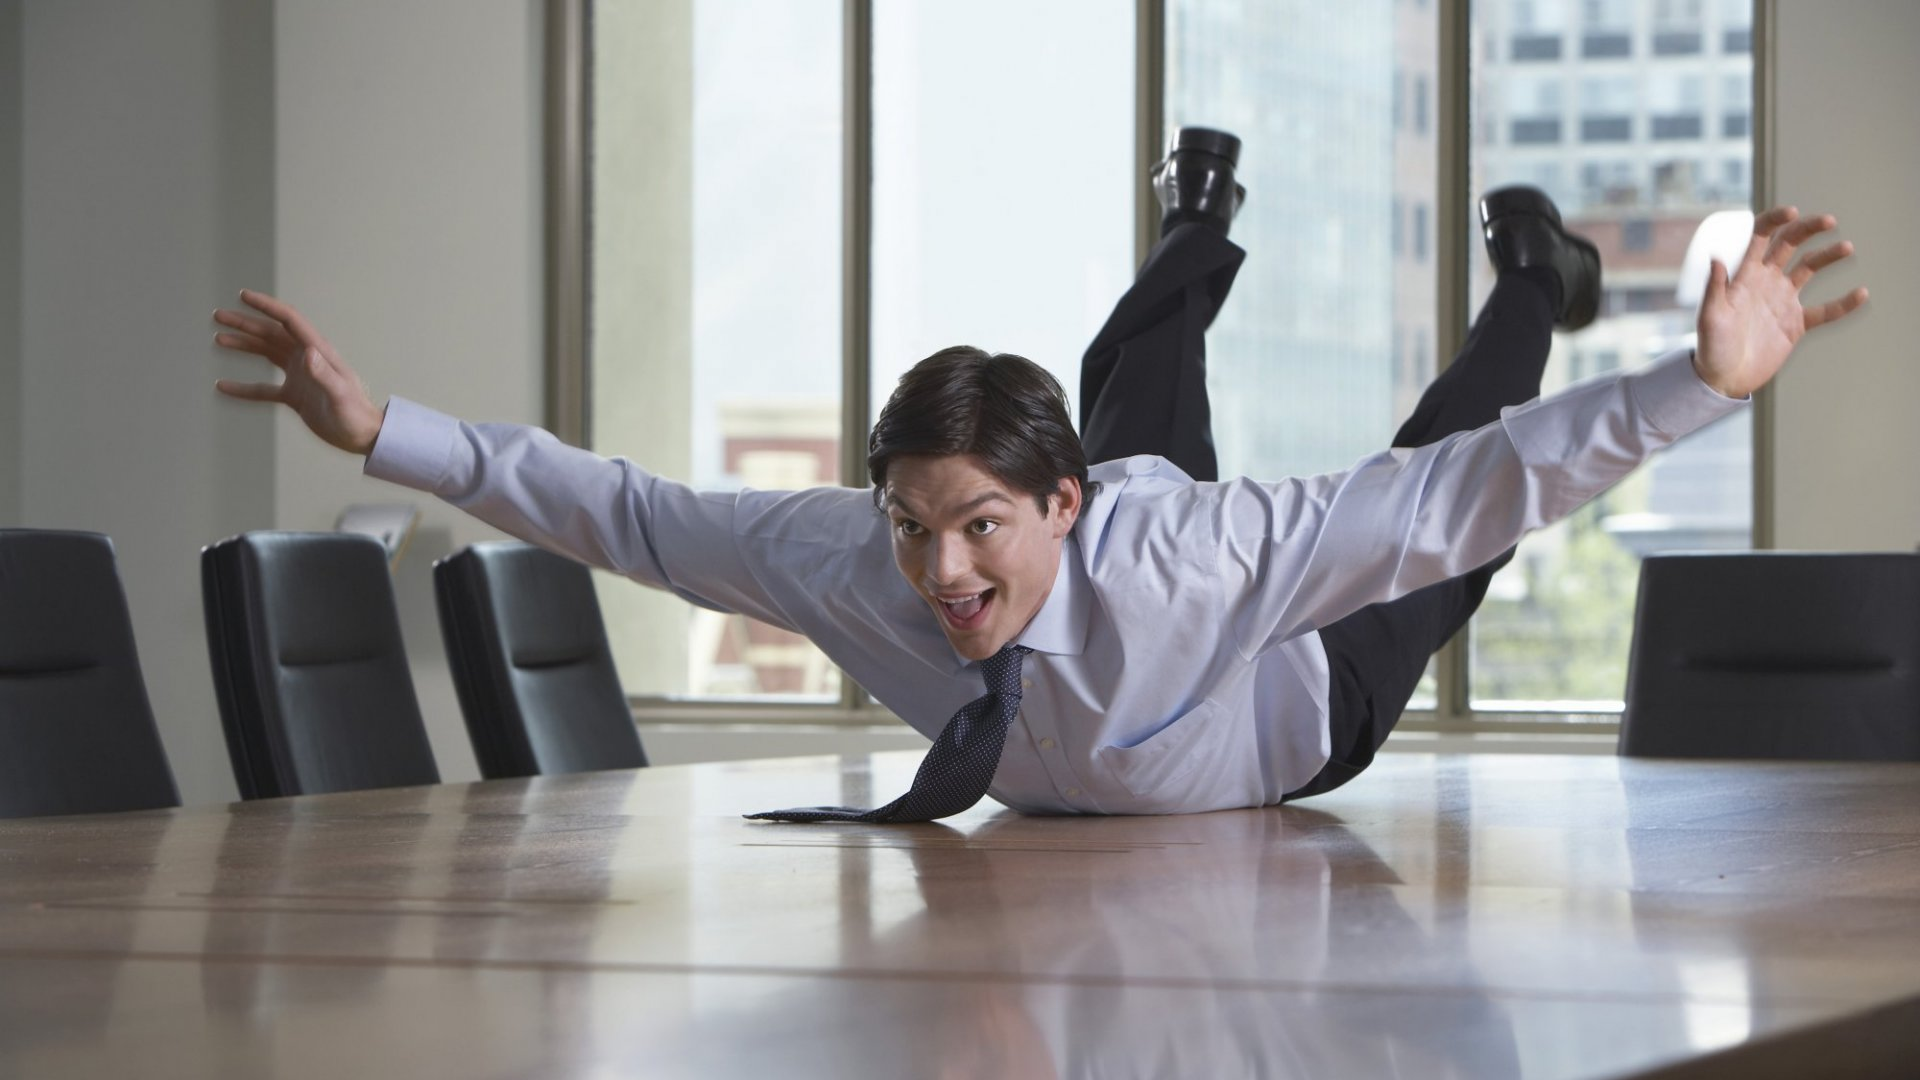 Top 7 Mistakes on Your First Day of Work That Make You Seem Inexperienced